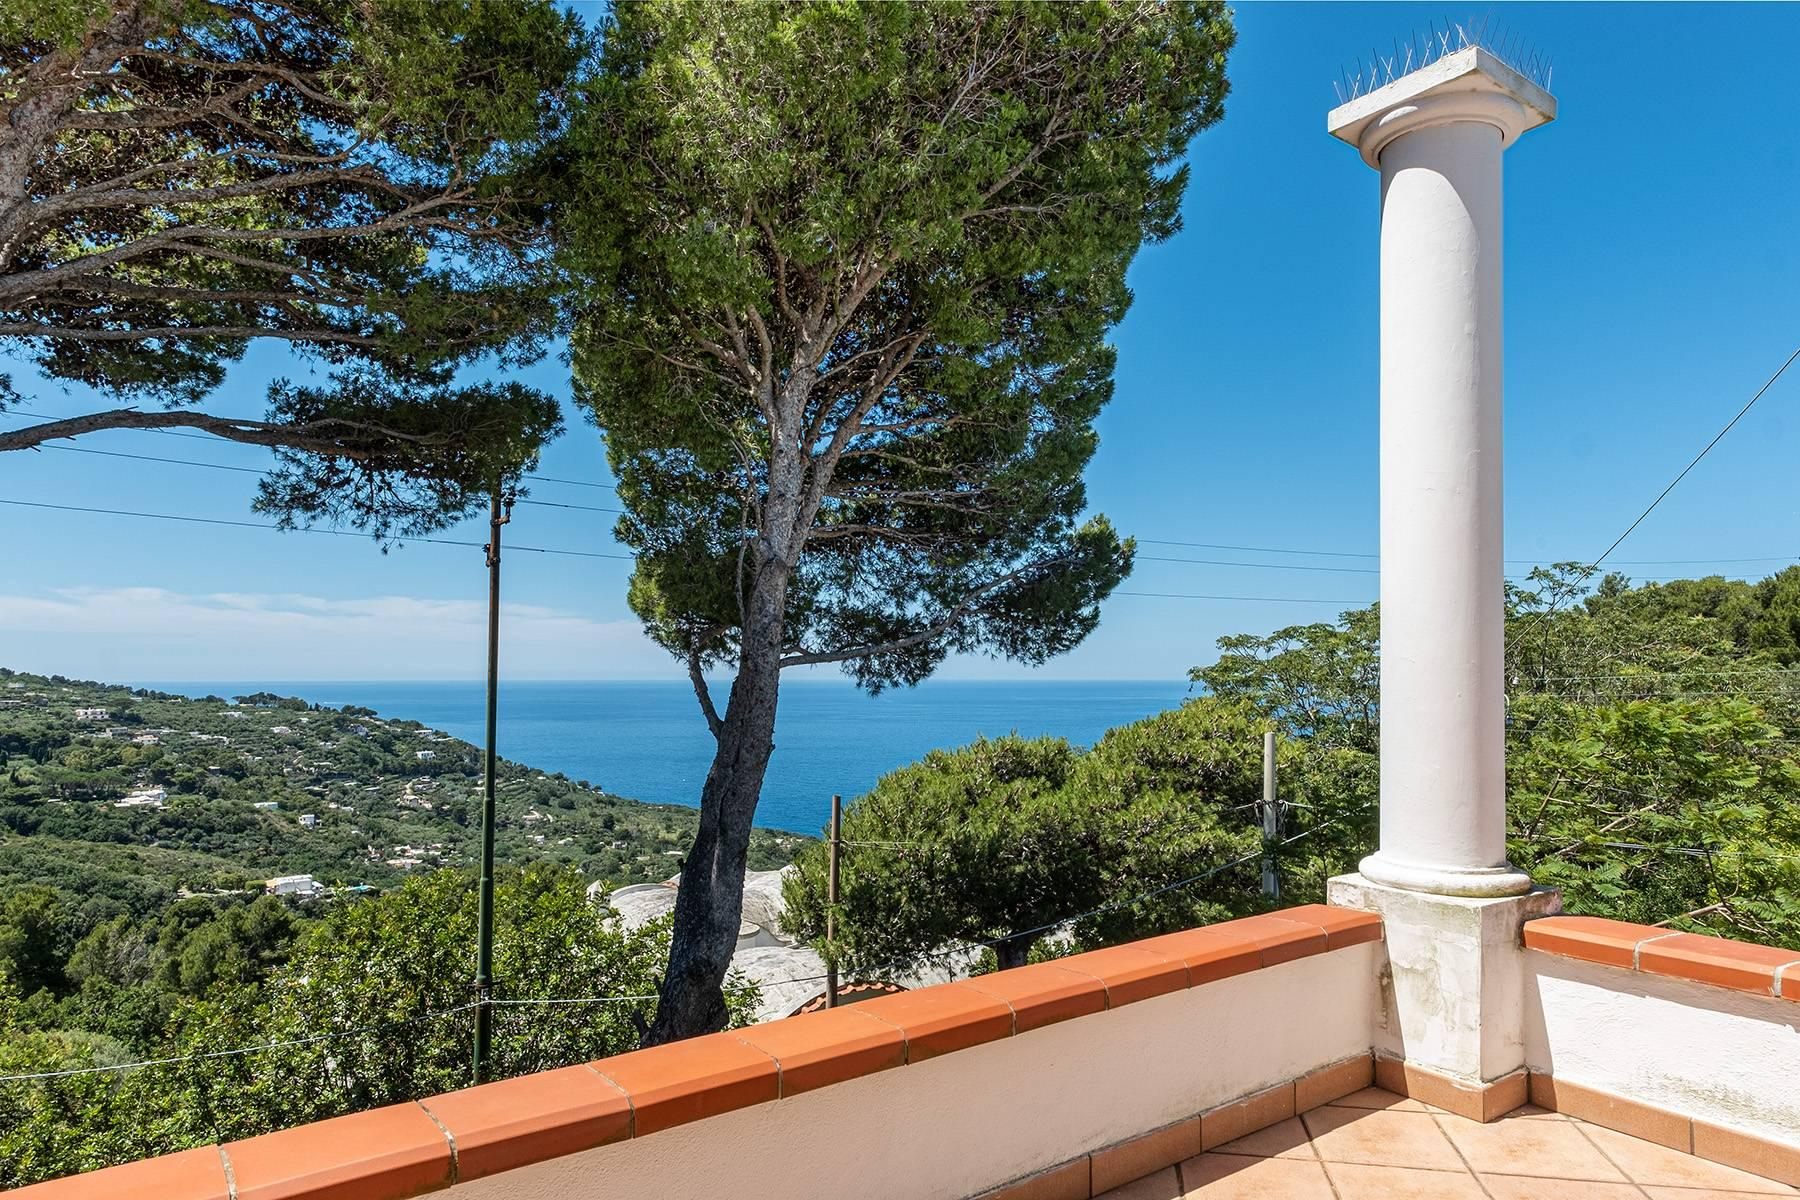 Charming villa with swimming pool in Anacapri - 15